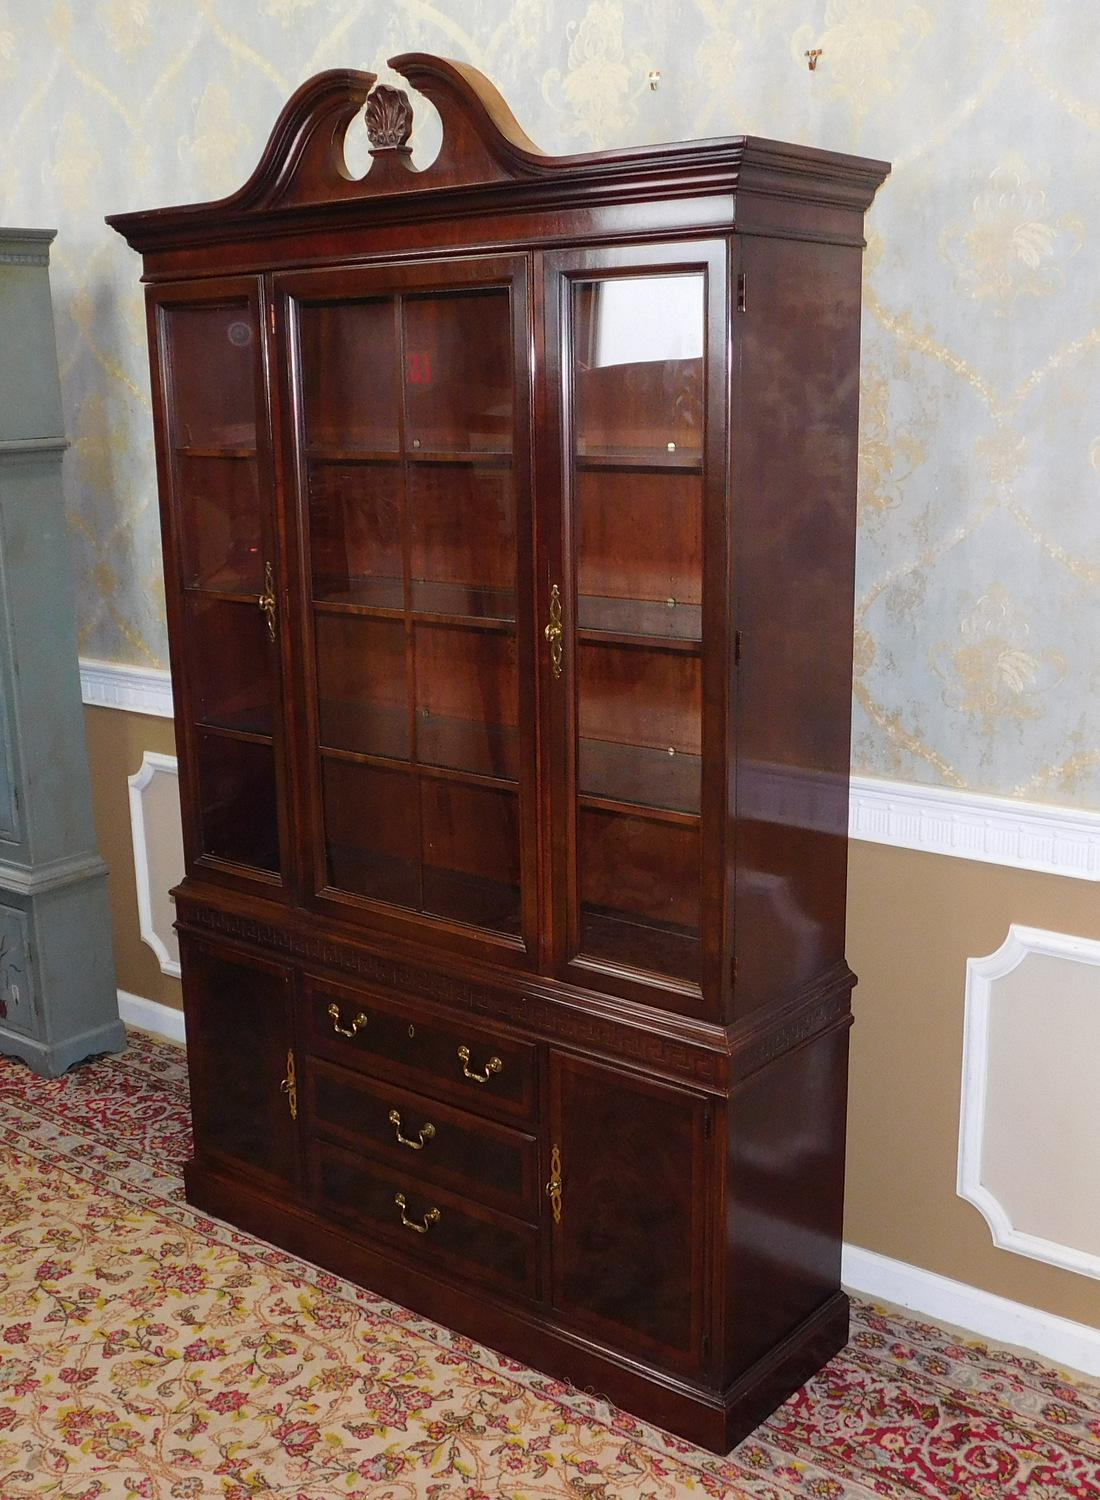 Good Mahogany Drexel Heritage Chippendale Style Dining Room China Cabinet  1990s   Image 3 Of 10